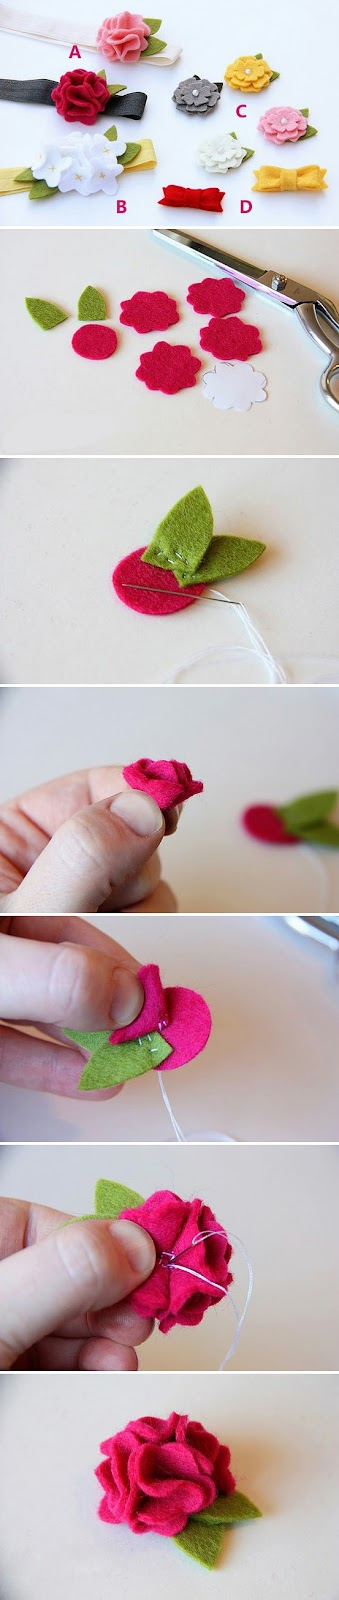 Felt flower tutorials for hair accessories | Flower Tutorials Directory - Click through to view 30 Fabulous Flower Tutorials!